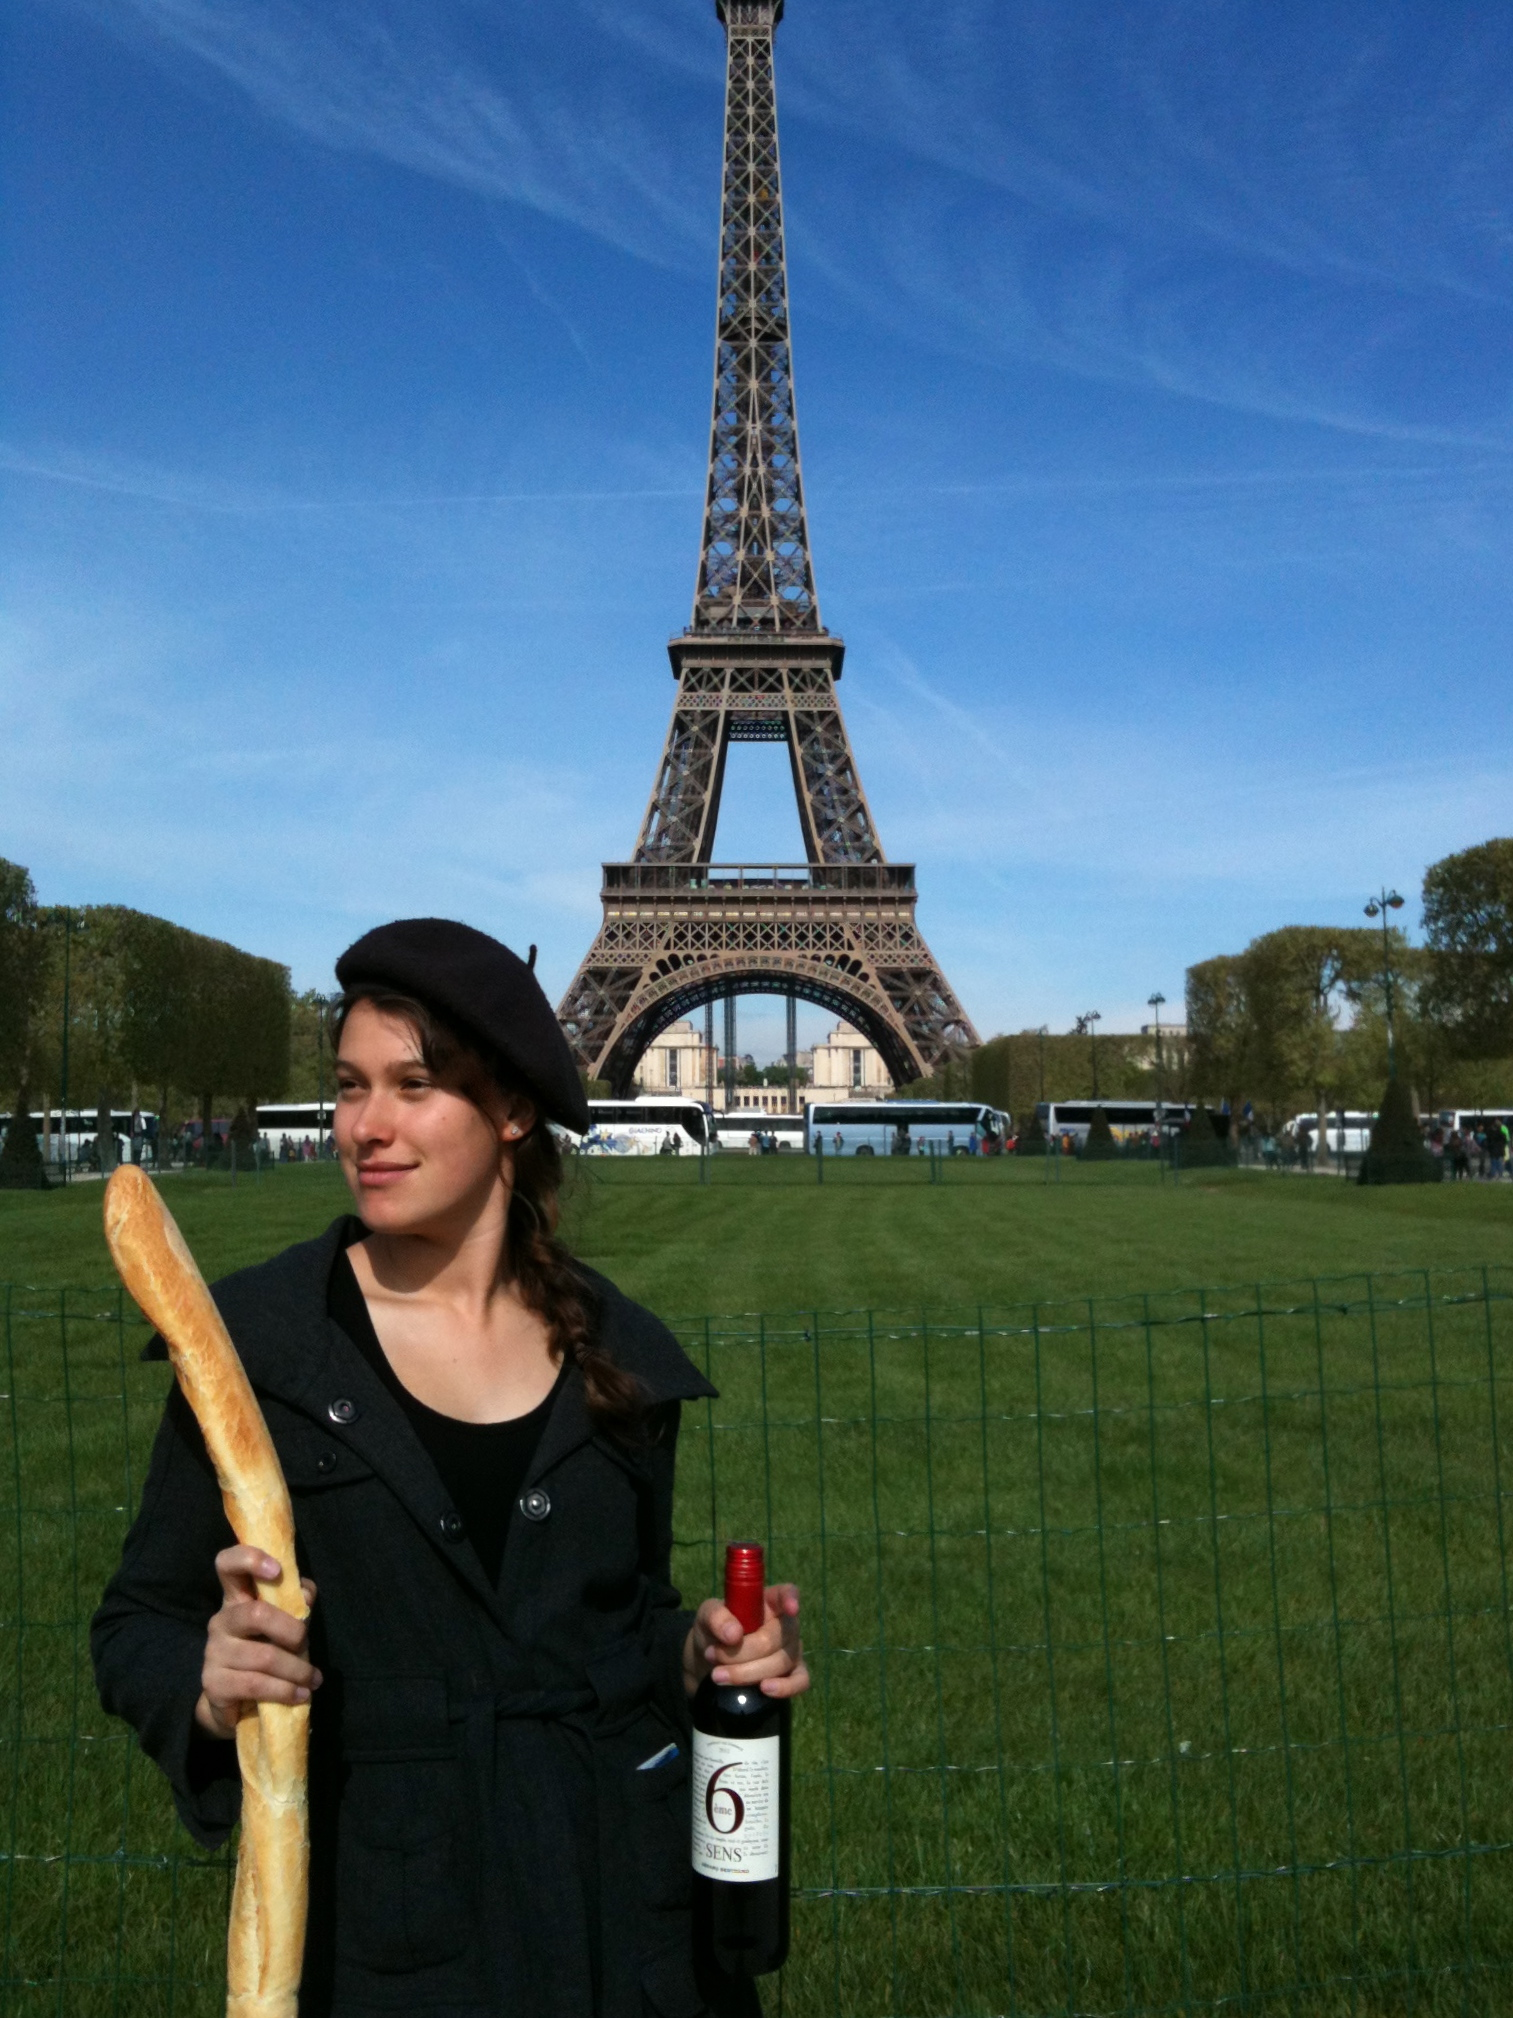 Me in front of the Eiffel Tower with a bottle of wine, a baguette and a beret